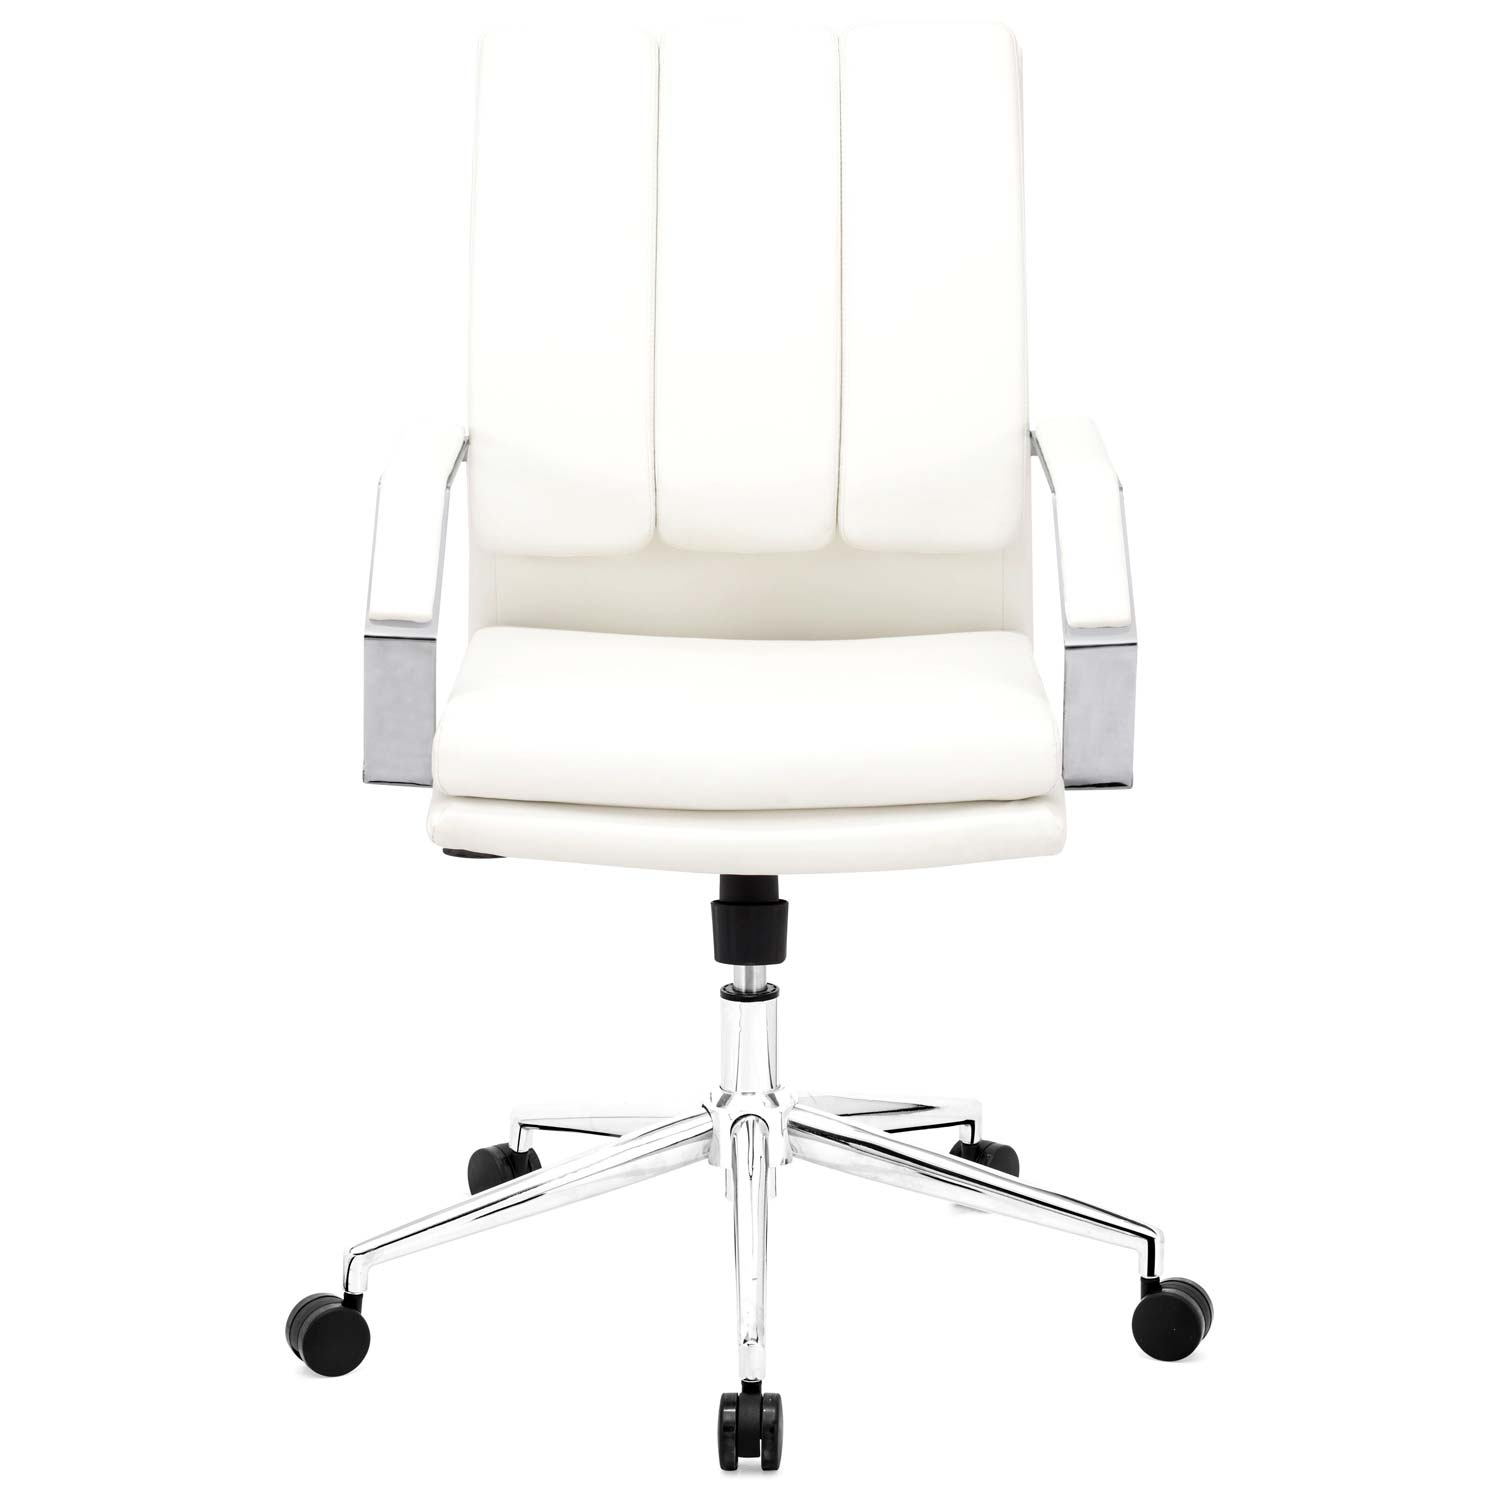 Director Pro Office Chair - Chrome Steel, White - ZM-205325